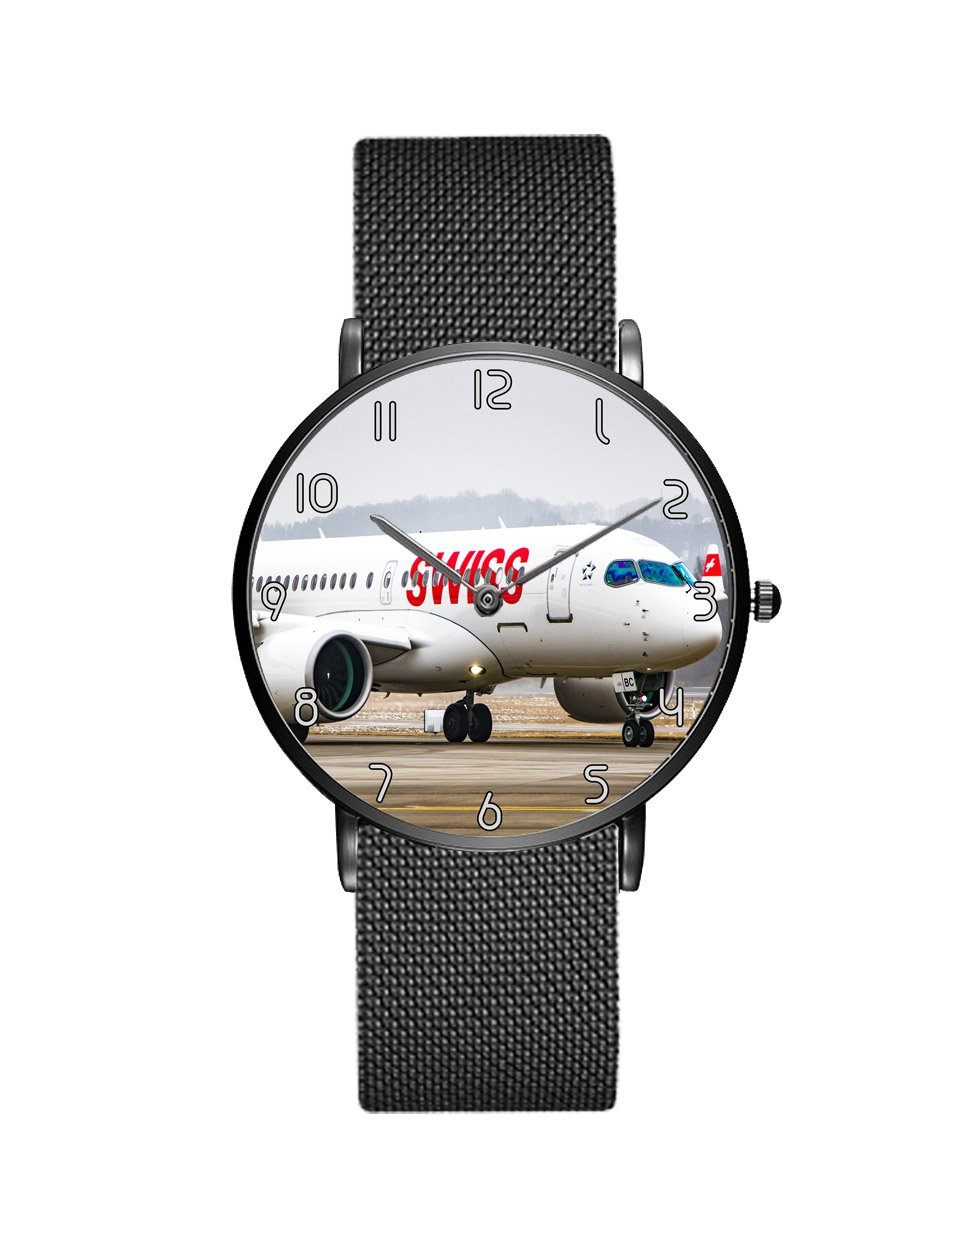 Swiss Airlines Bombardier CS100 Stainless Steel Strap Watches Aviation Shop Black & Stainless Steel Strap